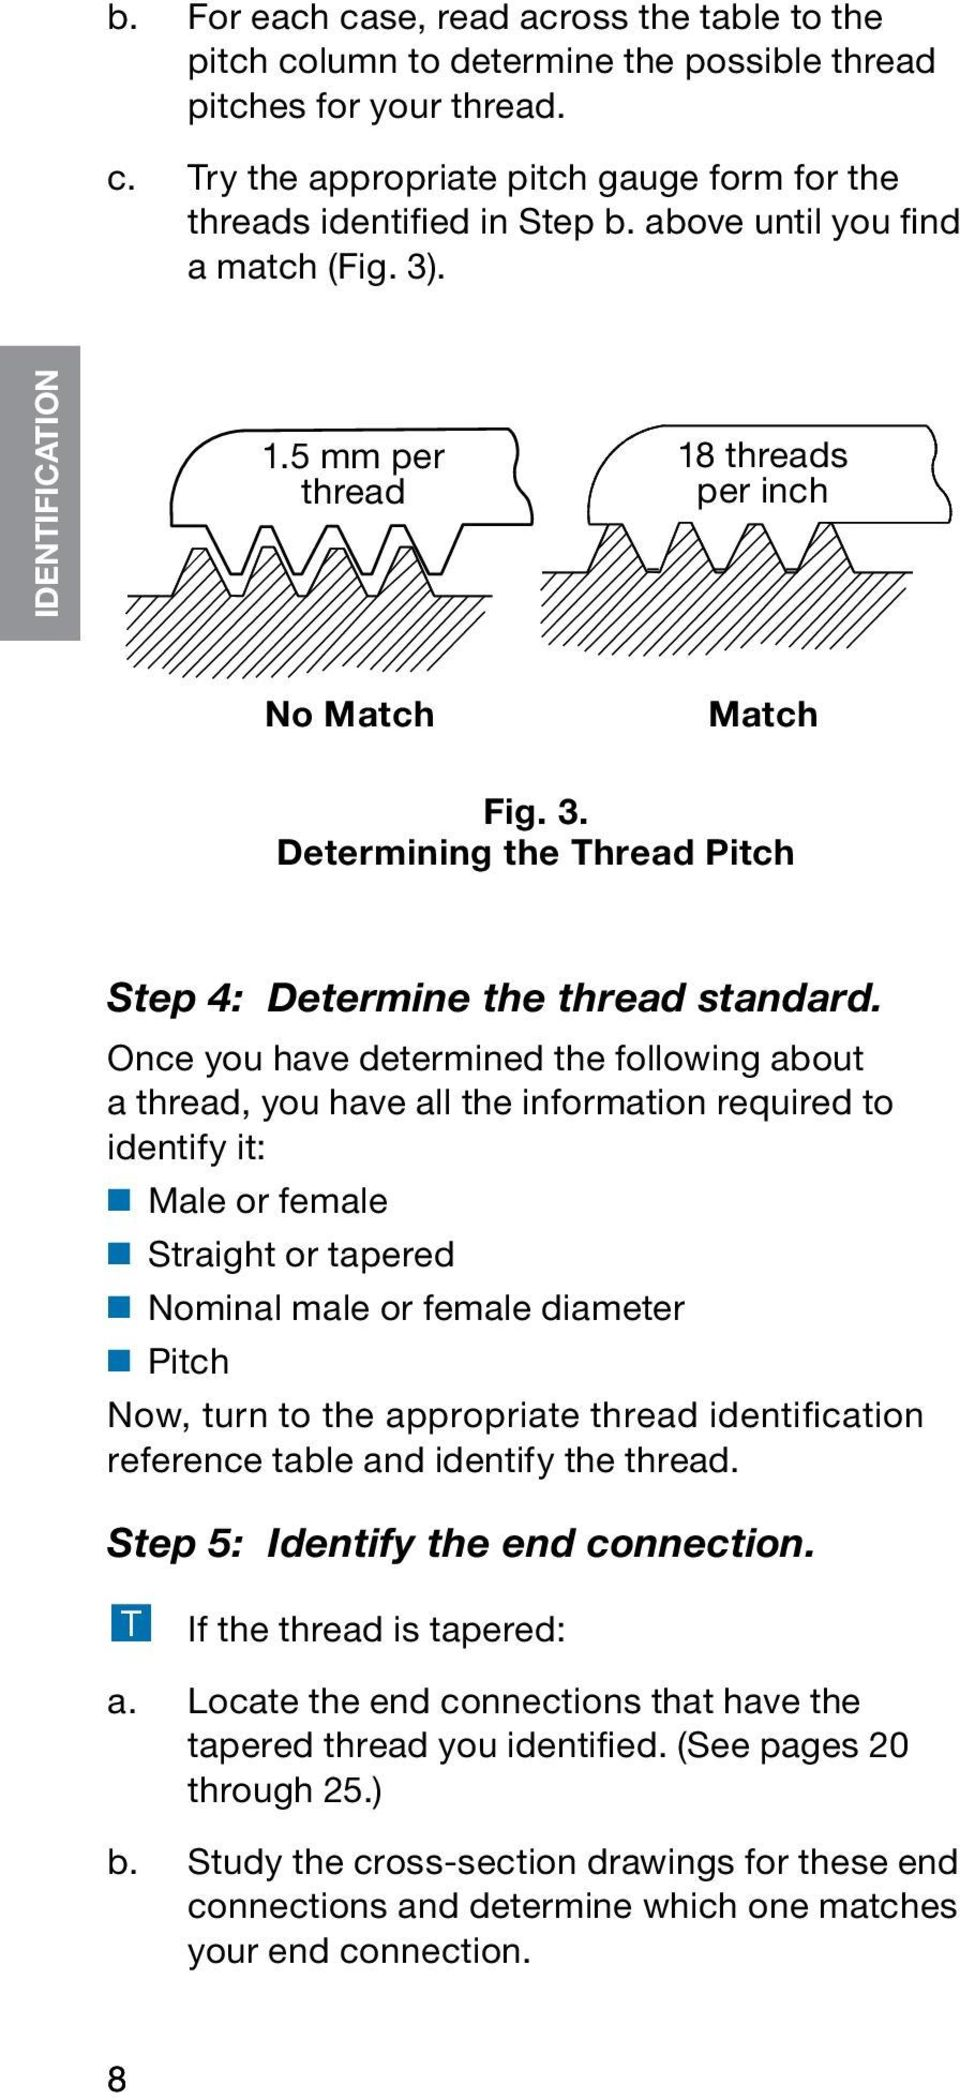 Once you have determined the following about a thread, you have all the information required to identify it: Male or female Straight or tapered Nominal male or female diameter Pitch Now, turn to the